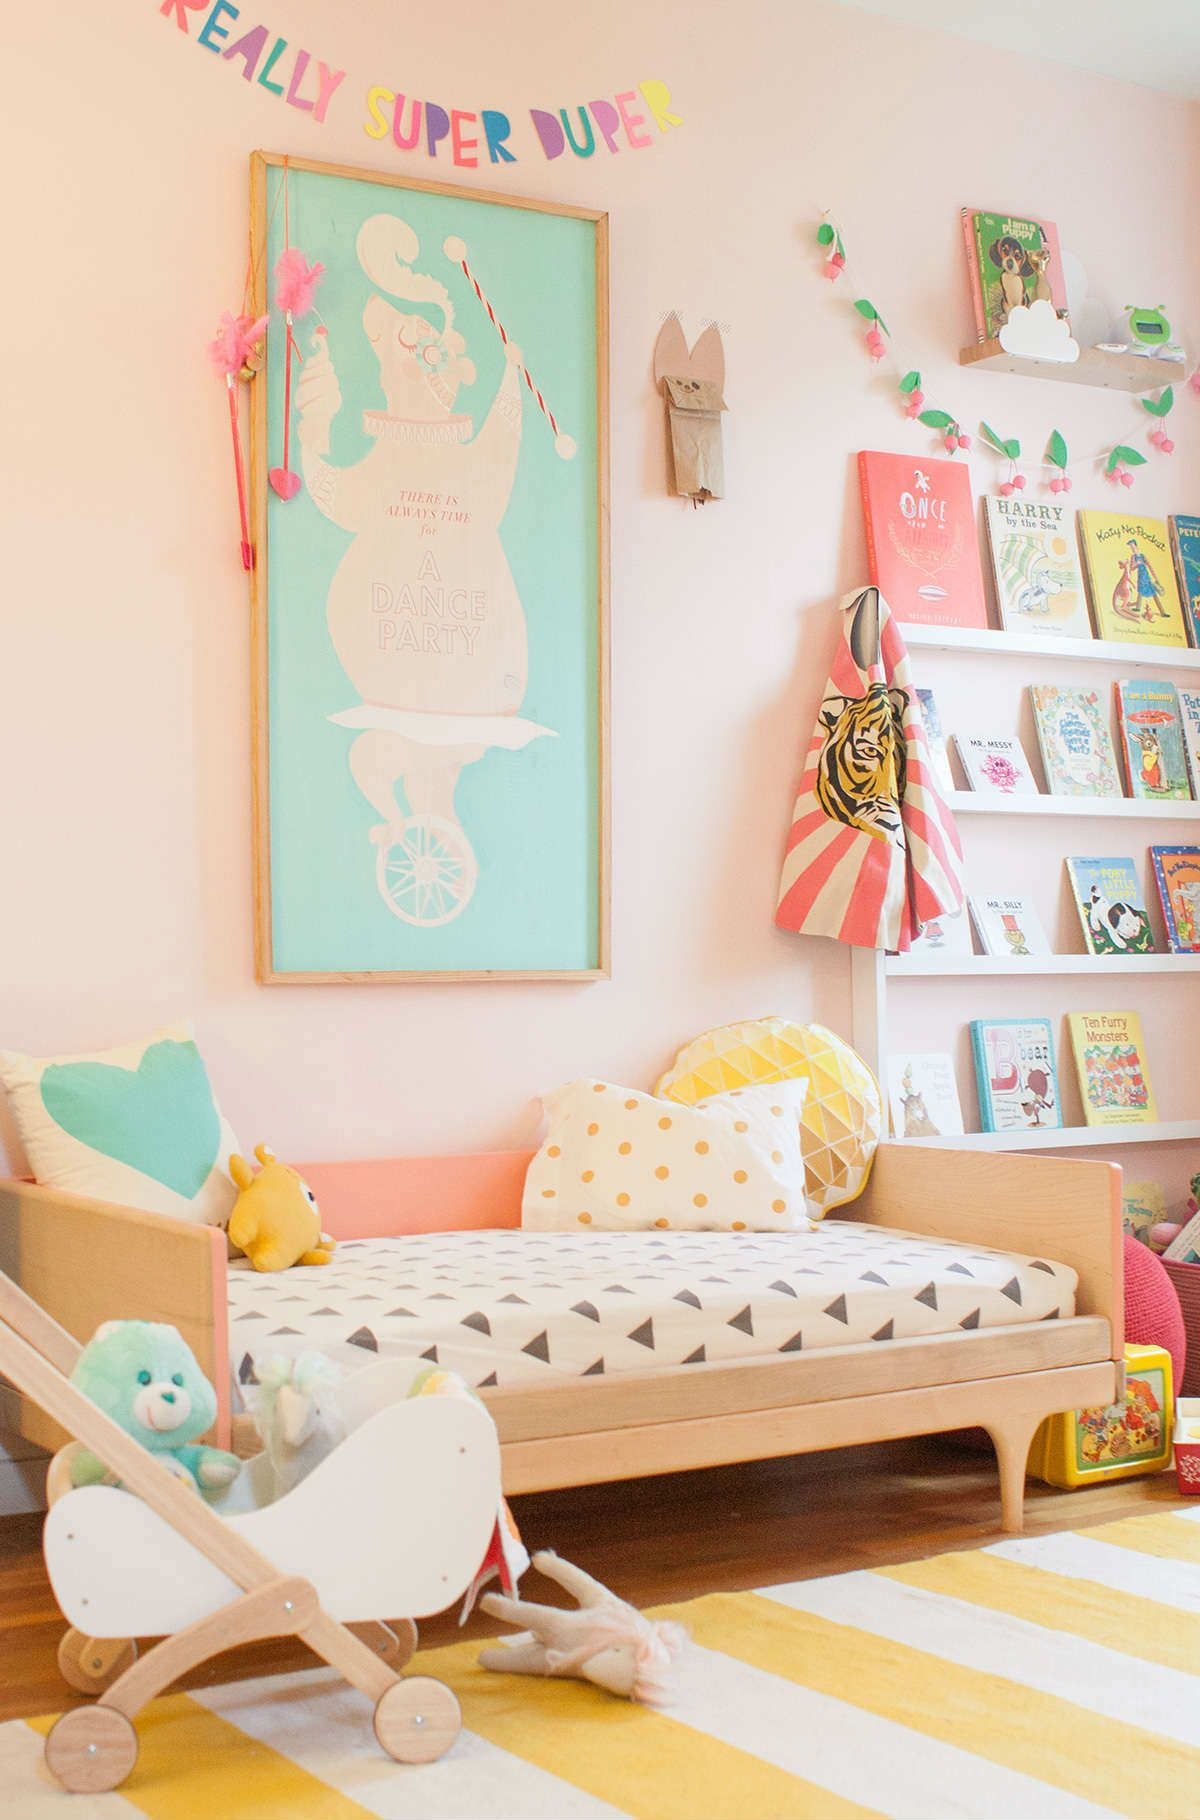 10 gorgeous girls rooms part 5 kinderzimmer kleinkind zimmer und wohnen nach wunsch. Black Bedroom Furniture Sets. Home Design Ideas